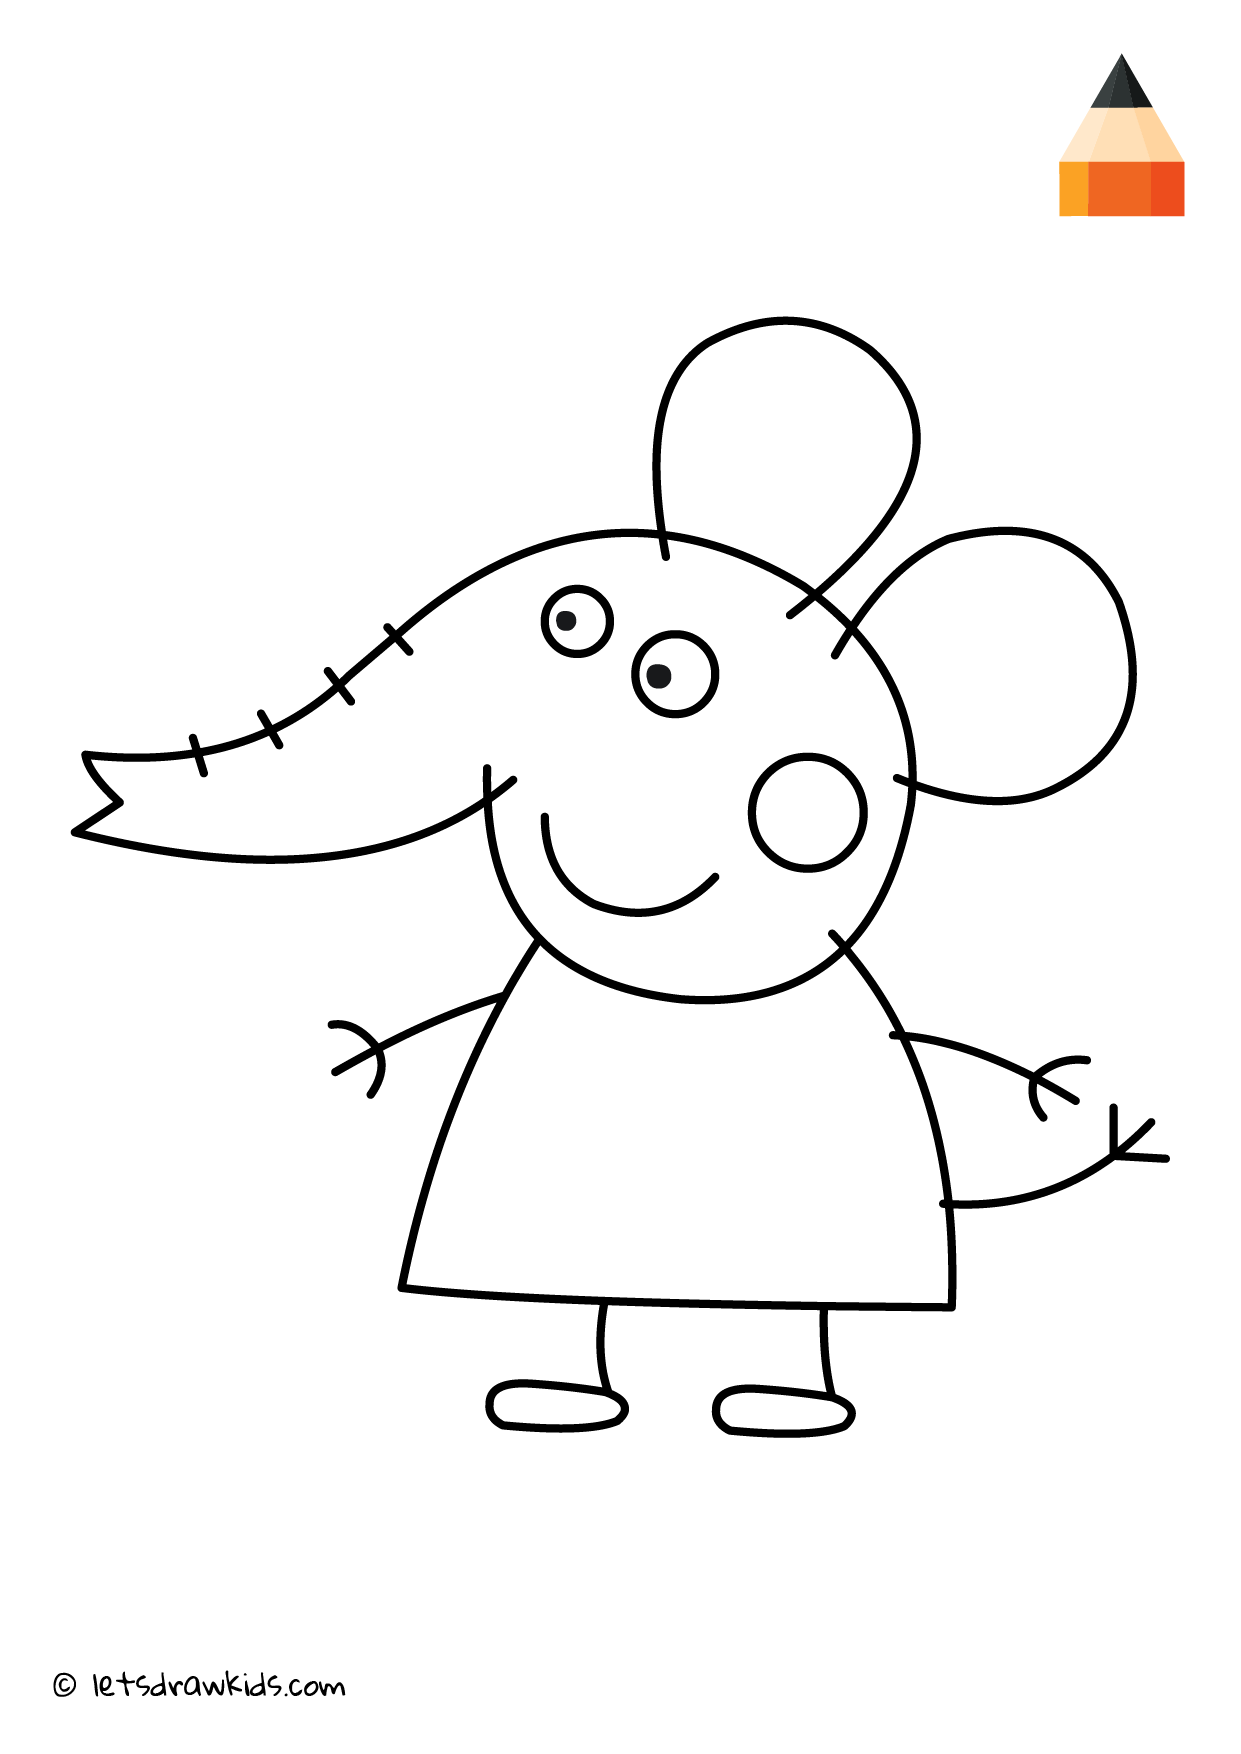 Coloring Page Peppa Pig Emily Elephant Peppa Pig Drawing Unicorn Coloring Pages Barbie Drawing